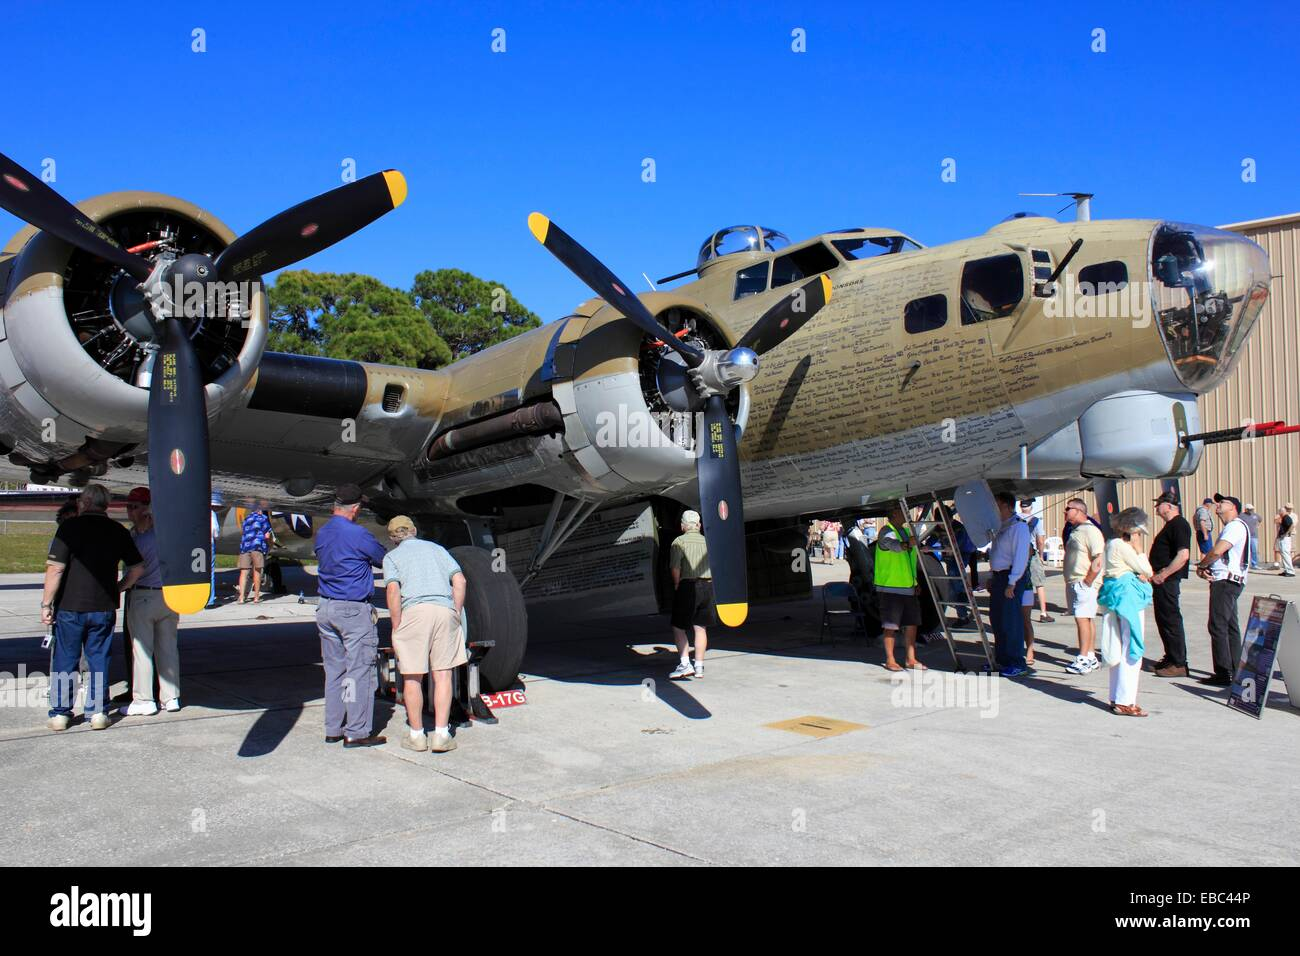 B-17 Flying Fortress WWII bomber aircraft in static display Stock Photo